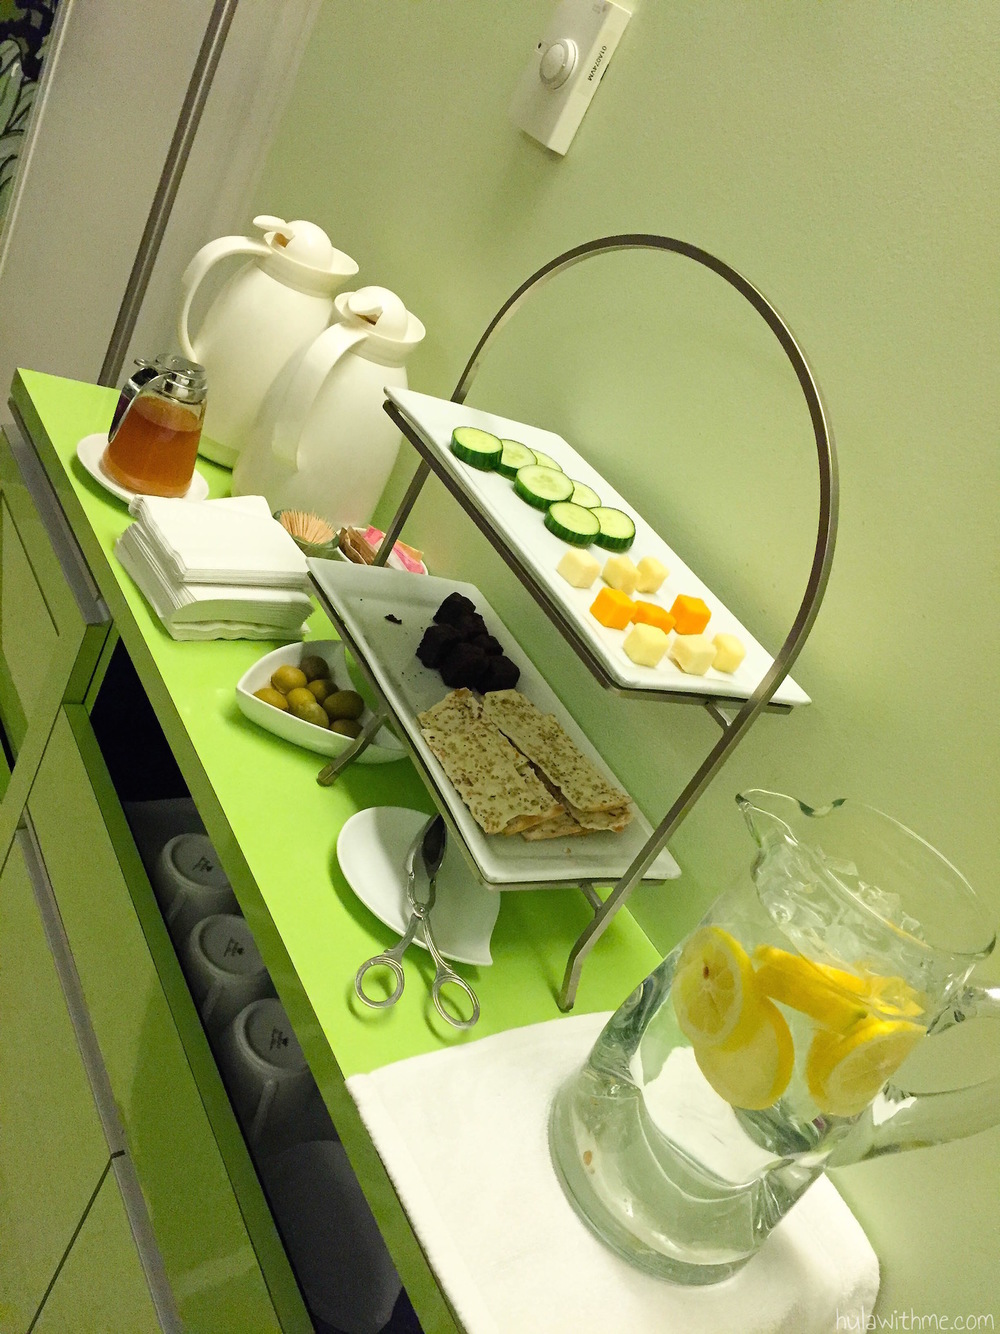 Bliss Spa in Boston, MA: Snacks and drinks served inside the waiting room.